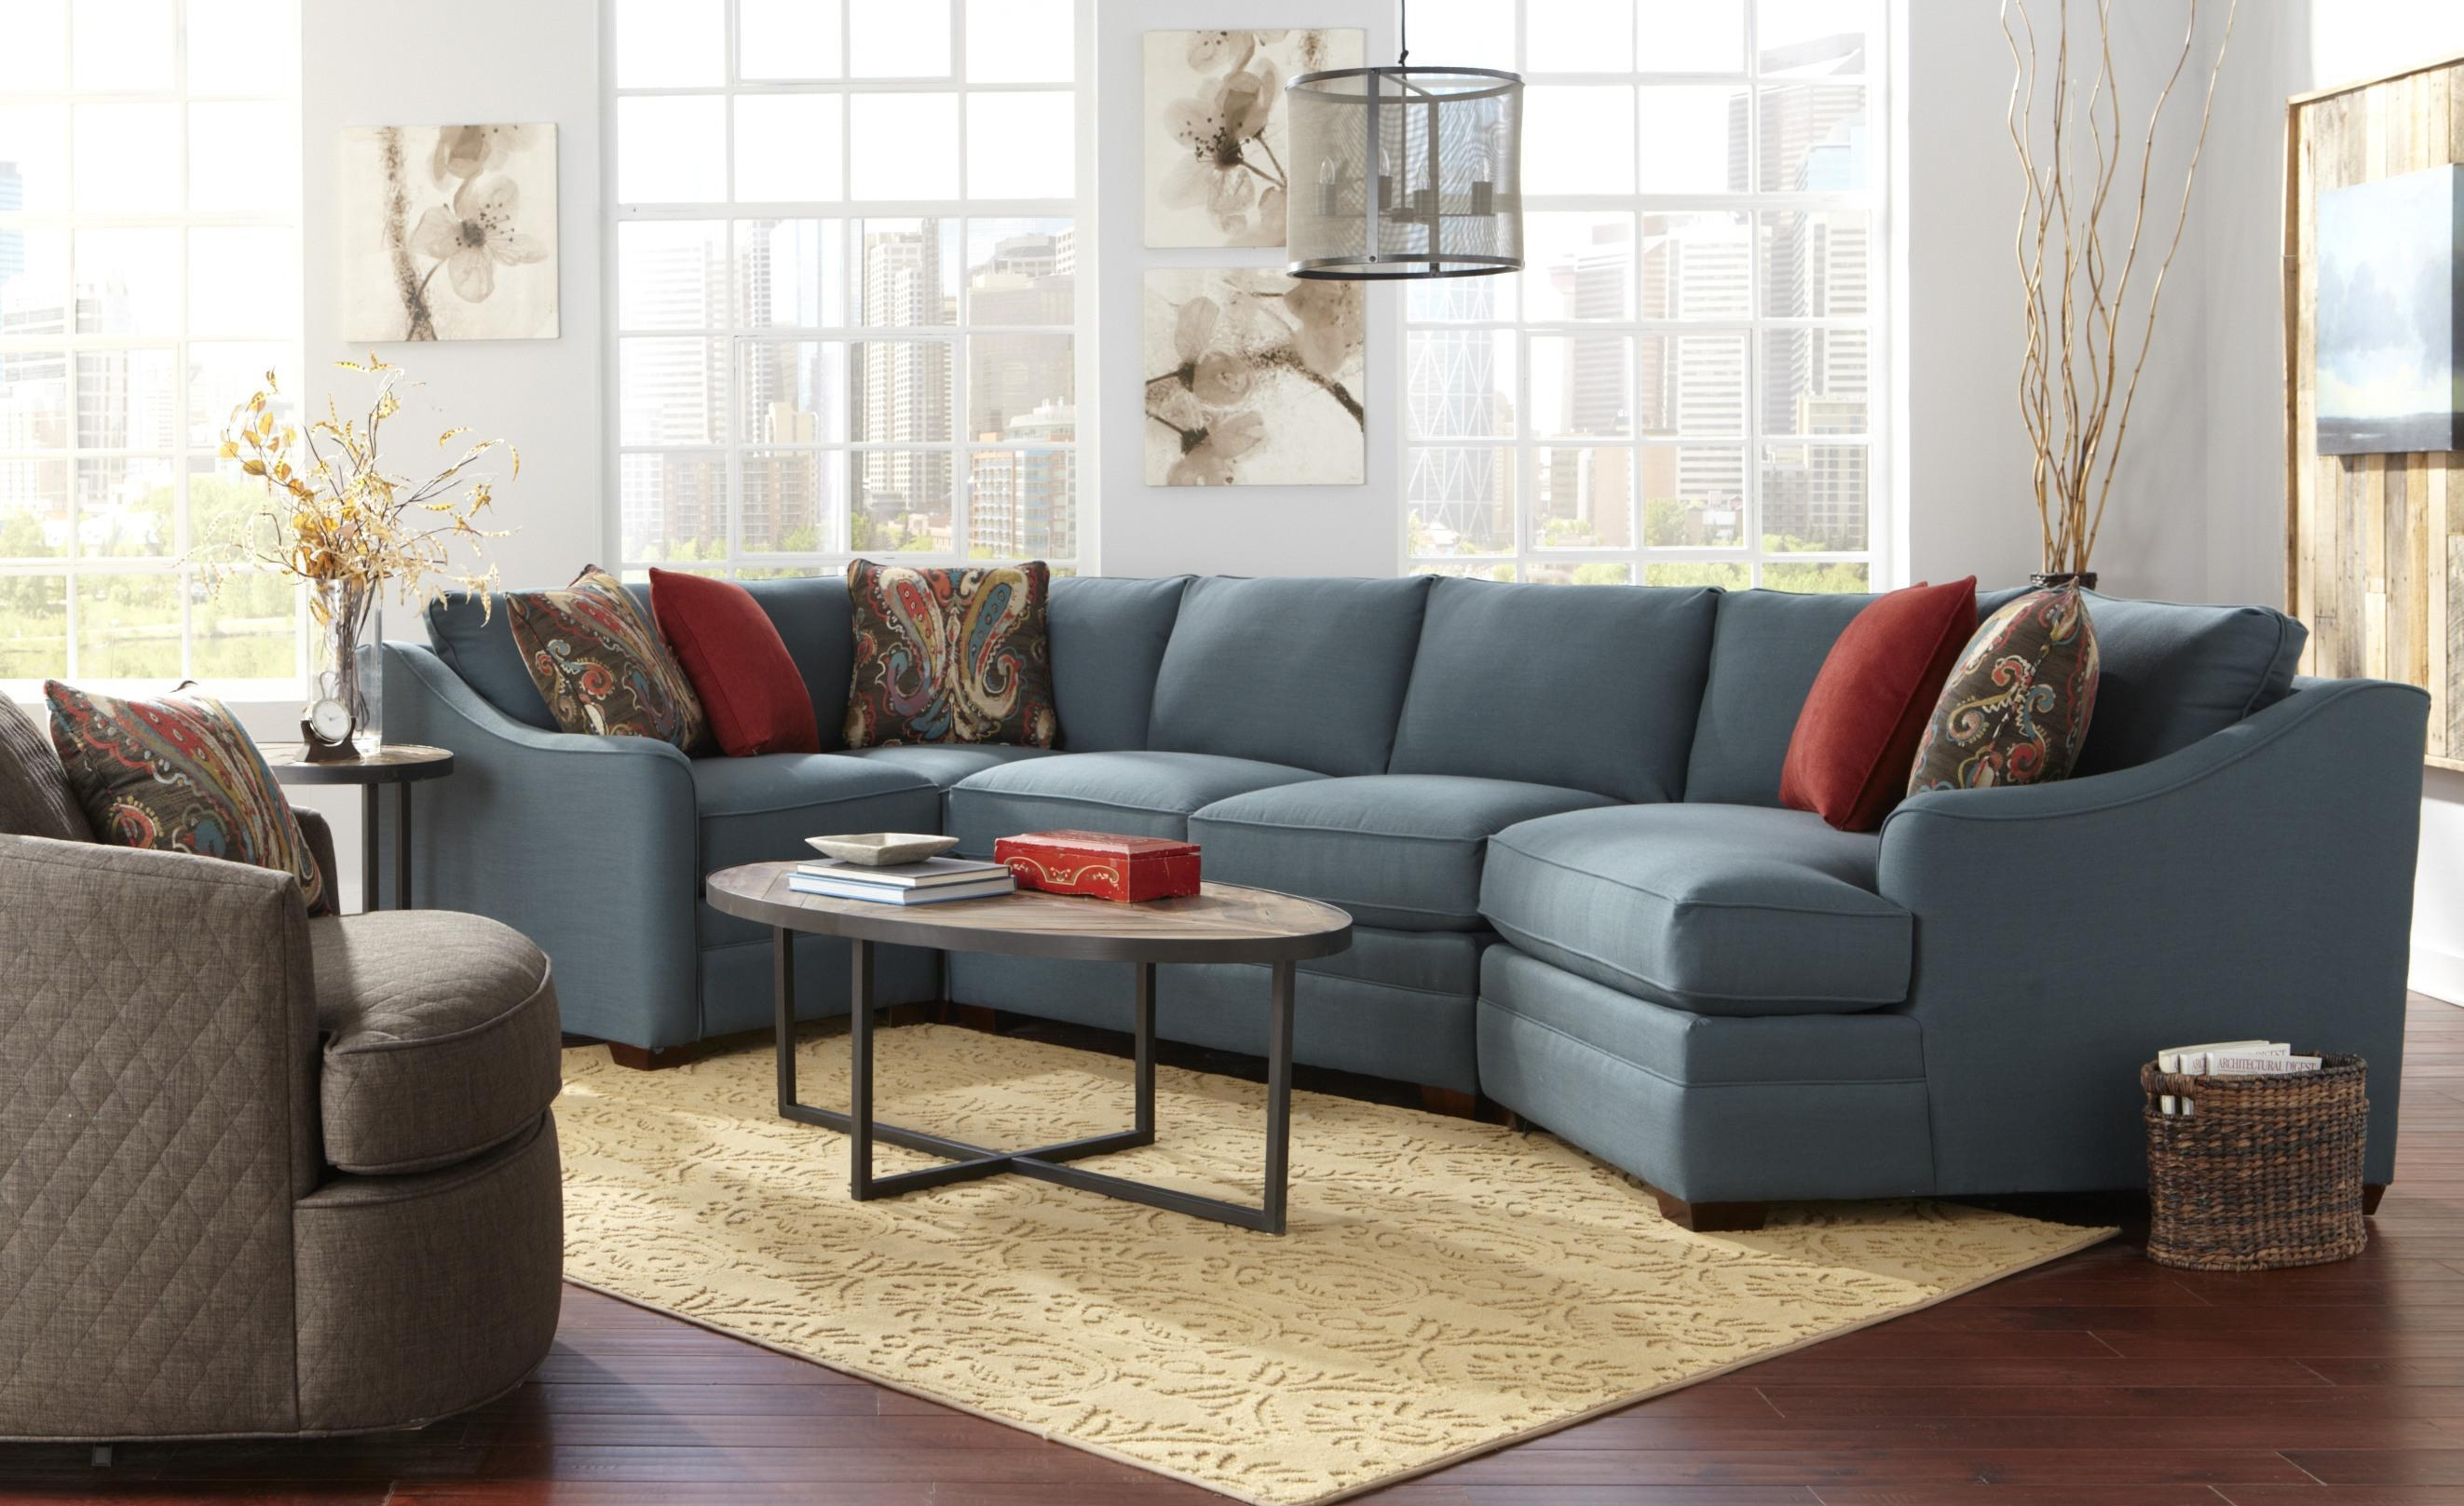 Cozy Life F9 Custom Collection Dancer 3 Piece Sectional W/ Raf Inside Sectional Cuddler (Image 5 of 20)